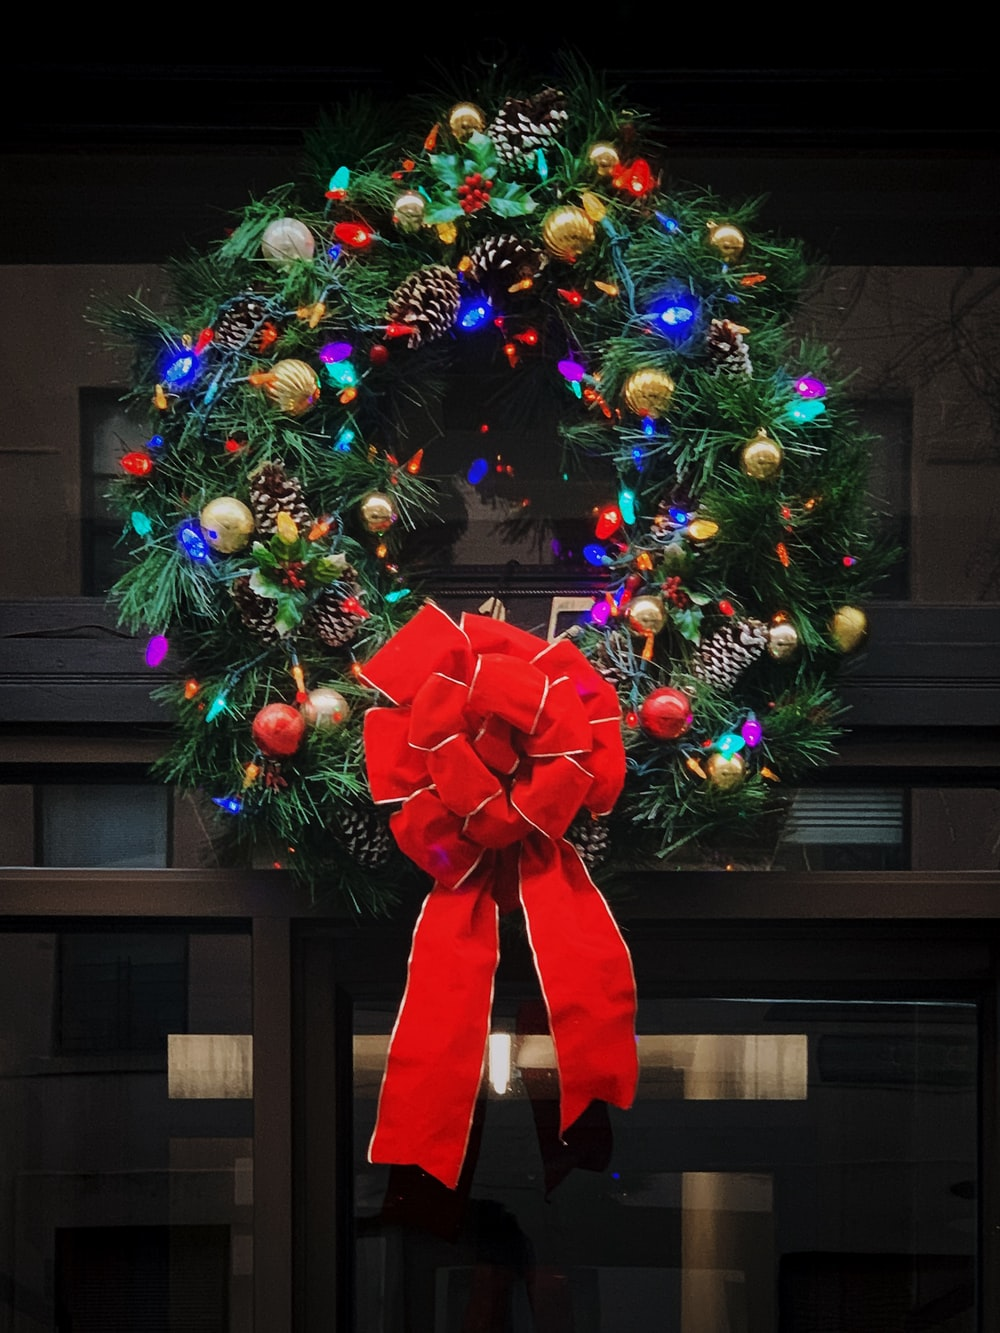 red and green Christmas wreath with baubles